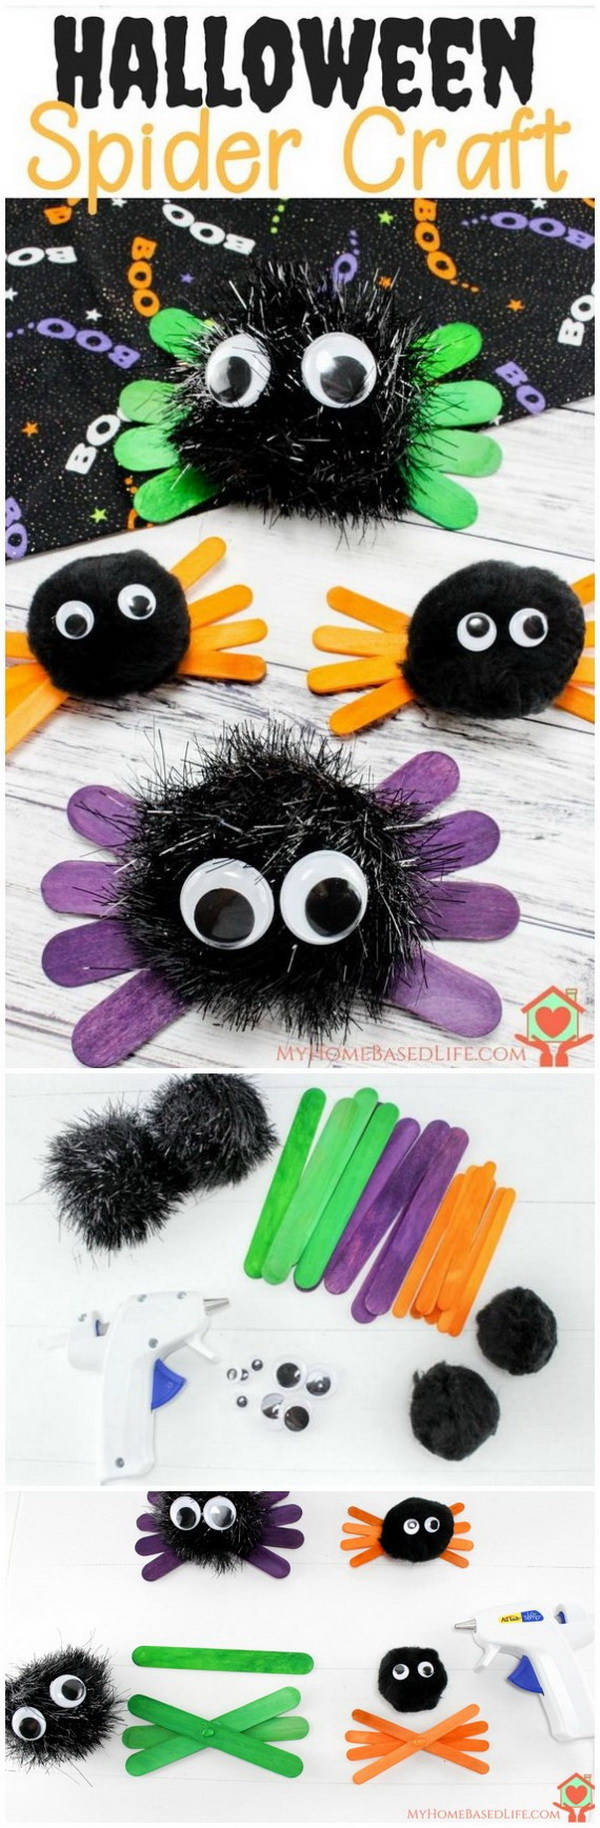 Halloween Spider Kids Craft. This halloween spider craft is super simple and only take a few materials to make in no time. Your little ones will have great fun making these scary spiders!